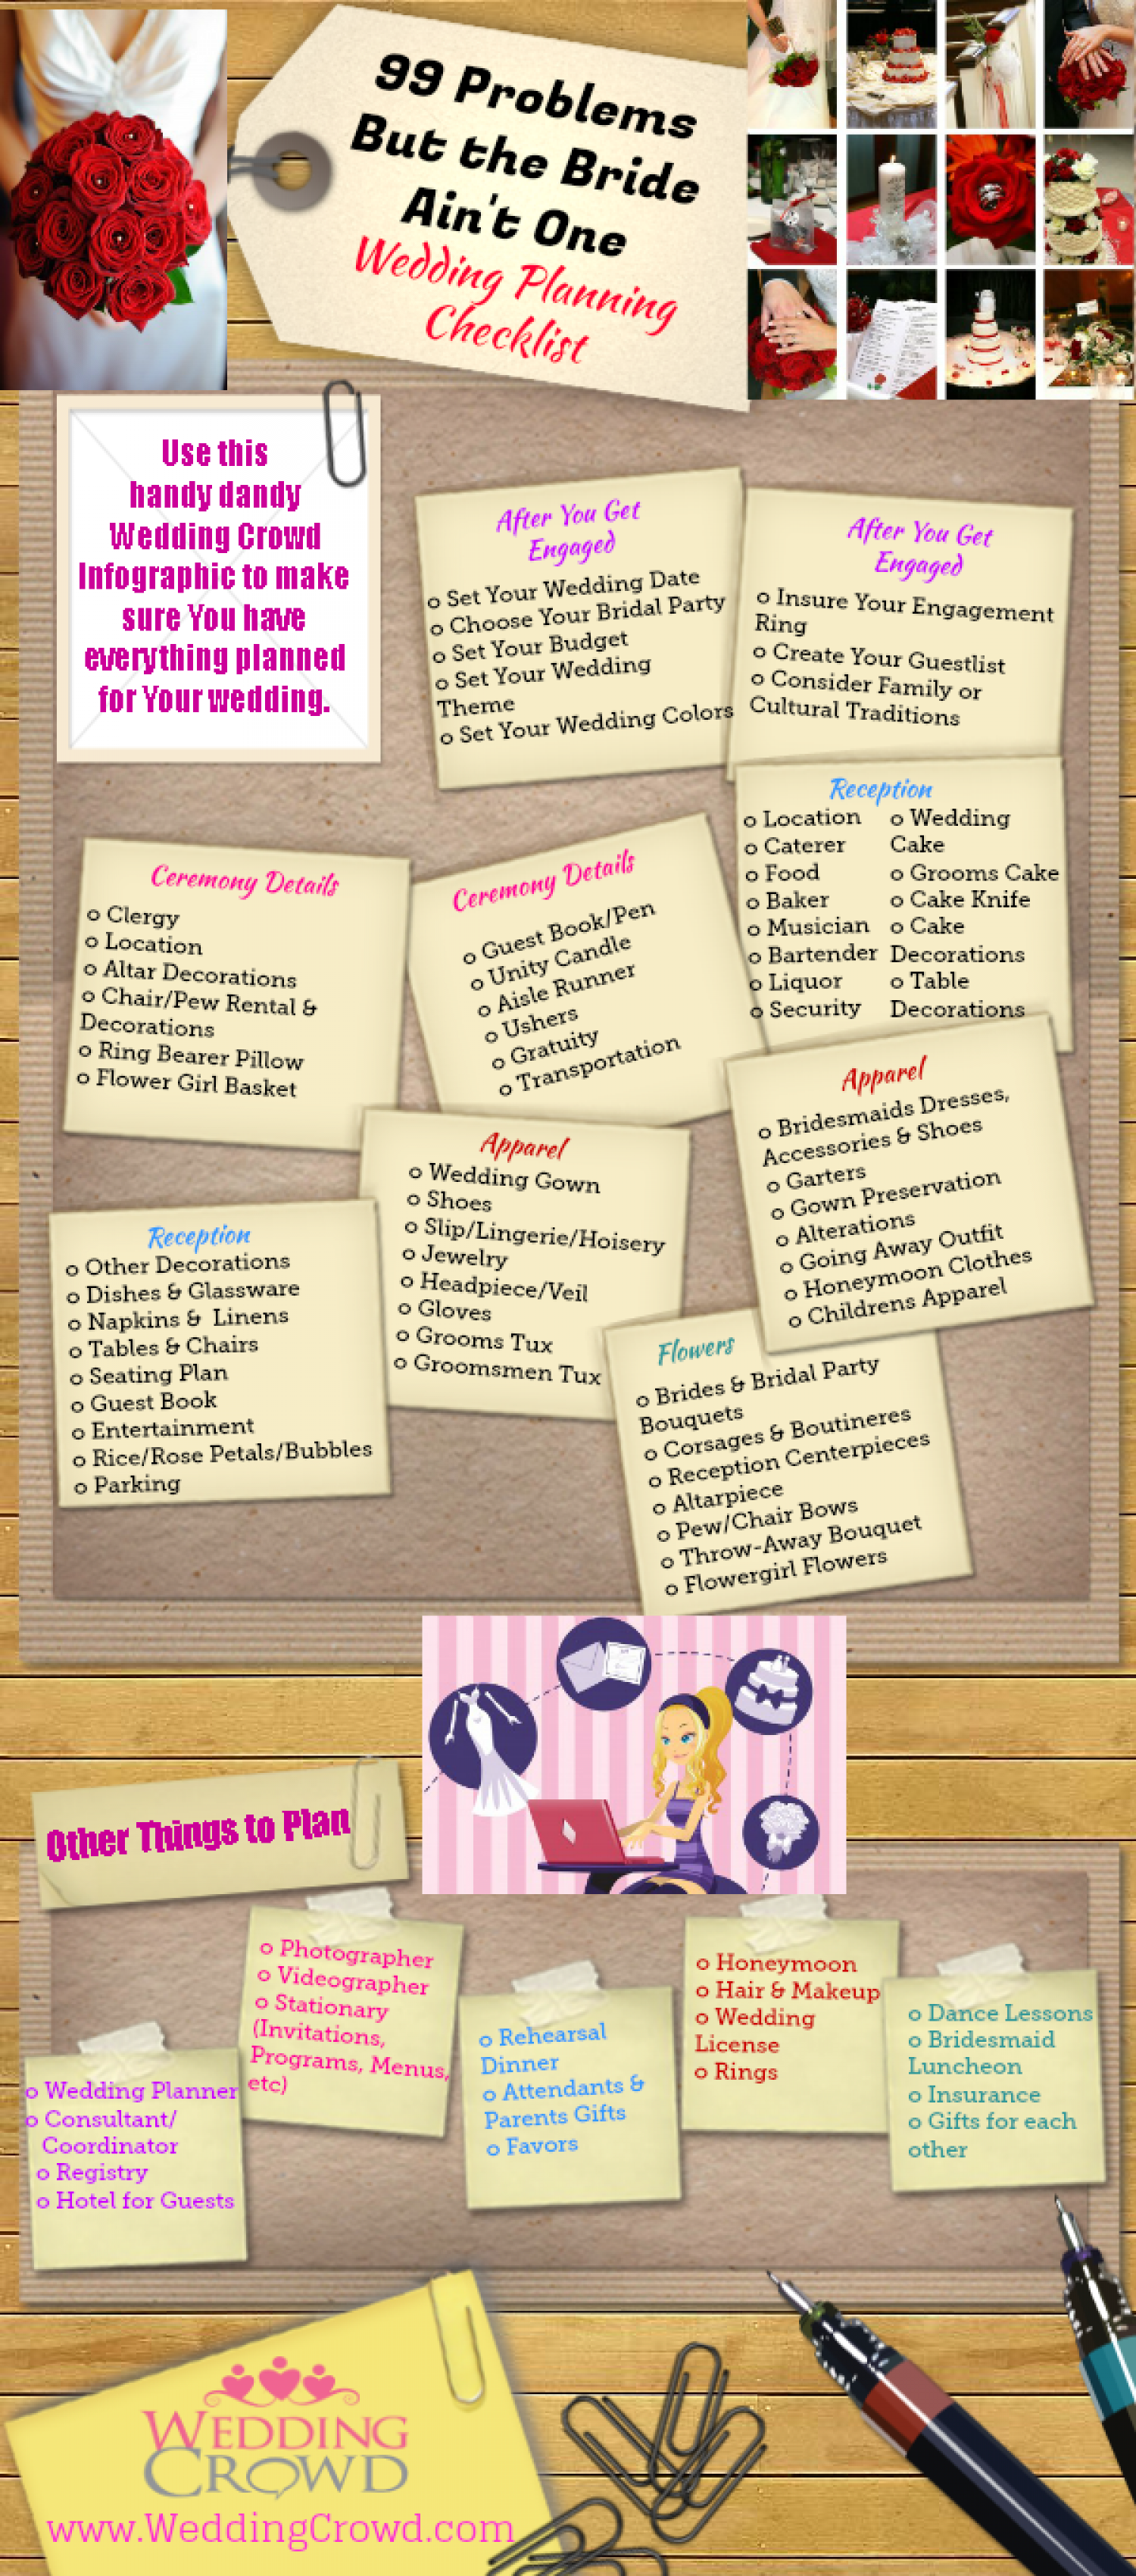 99 Problems But the Bride Ain't One, Wedding Planning Checklist Infographic